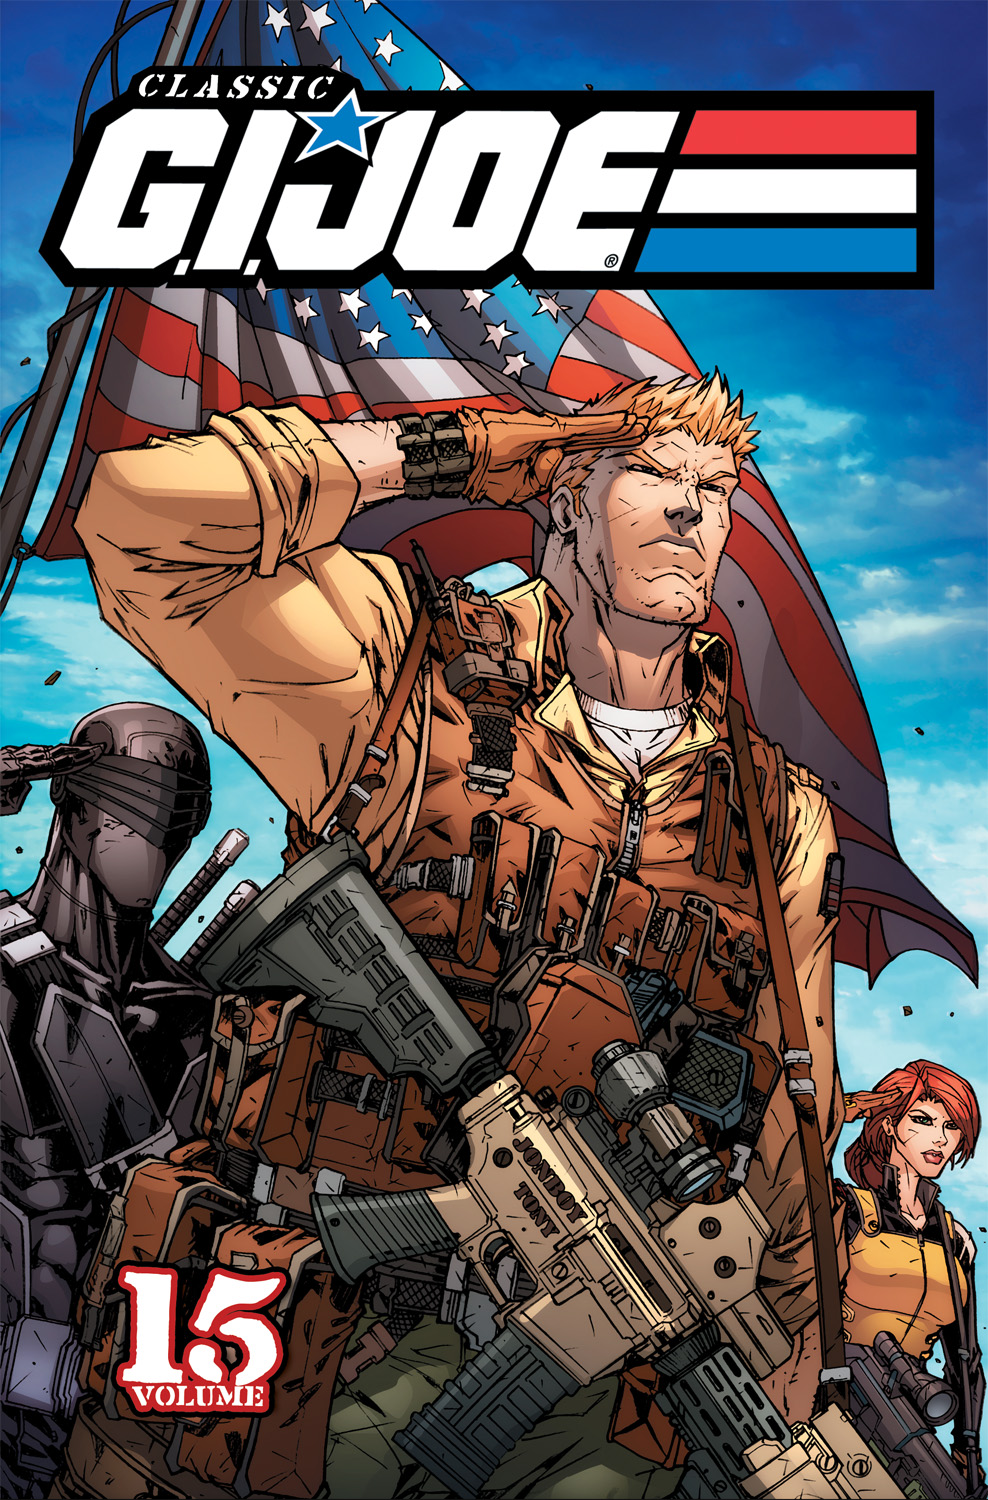 G.I. JOE: Classic Volume 15